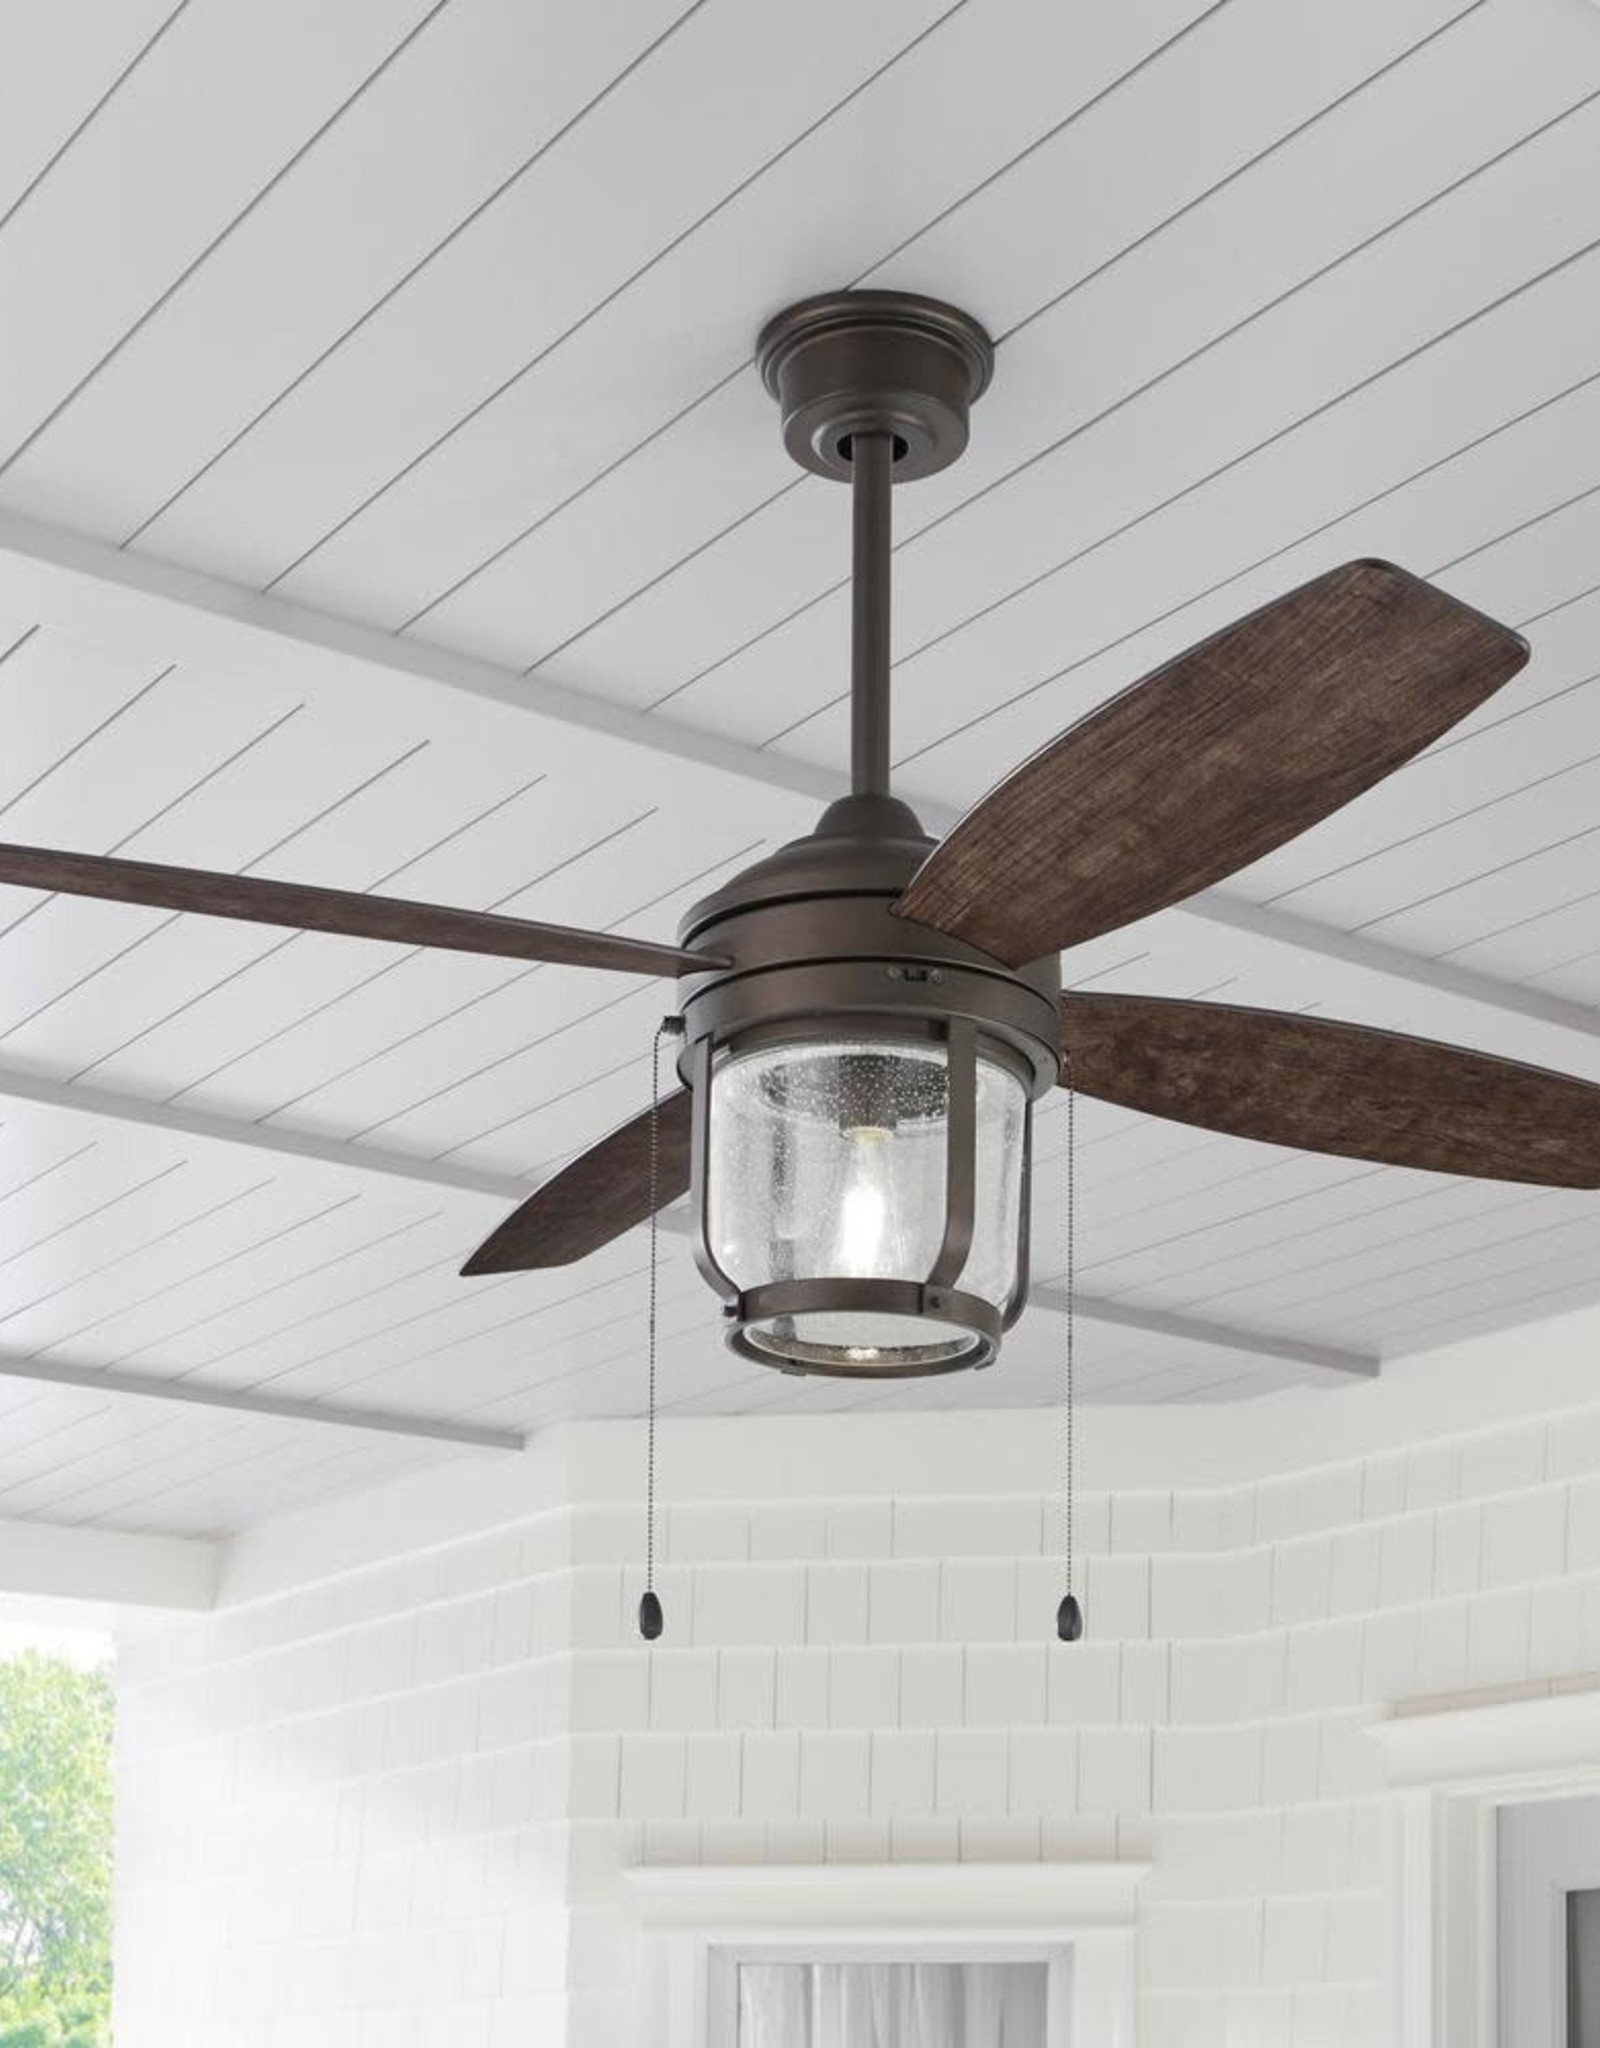 Northampton 52 in. LED Espresso Bronze Ceiling Fan with Light and WiFi Remote Control works with Google and Alexa